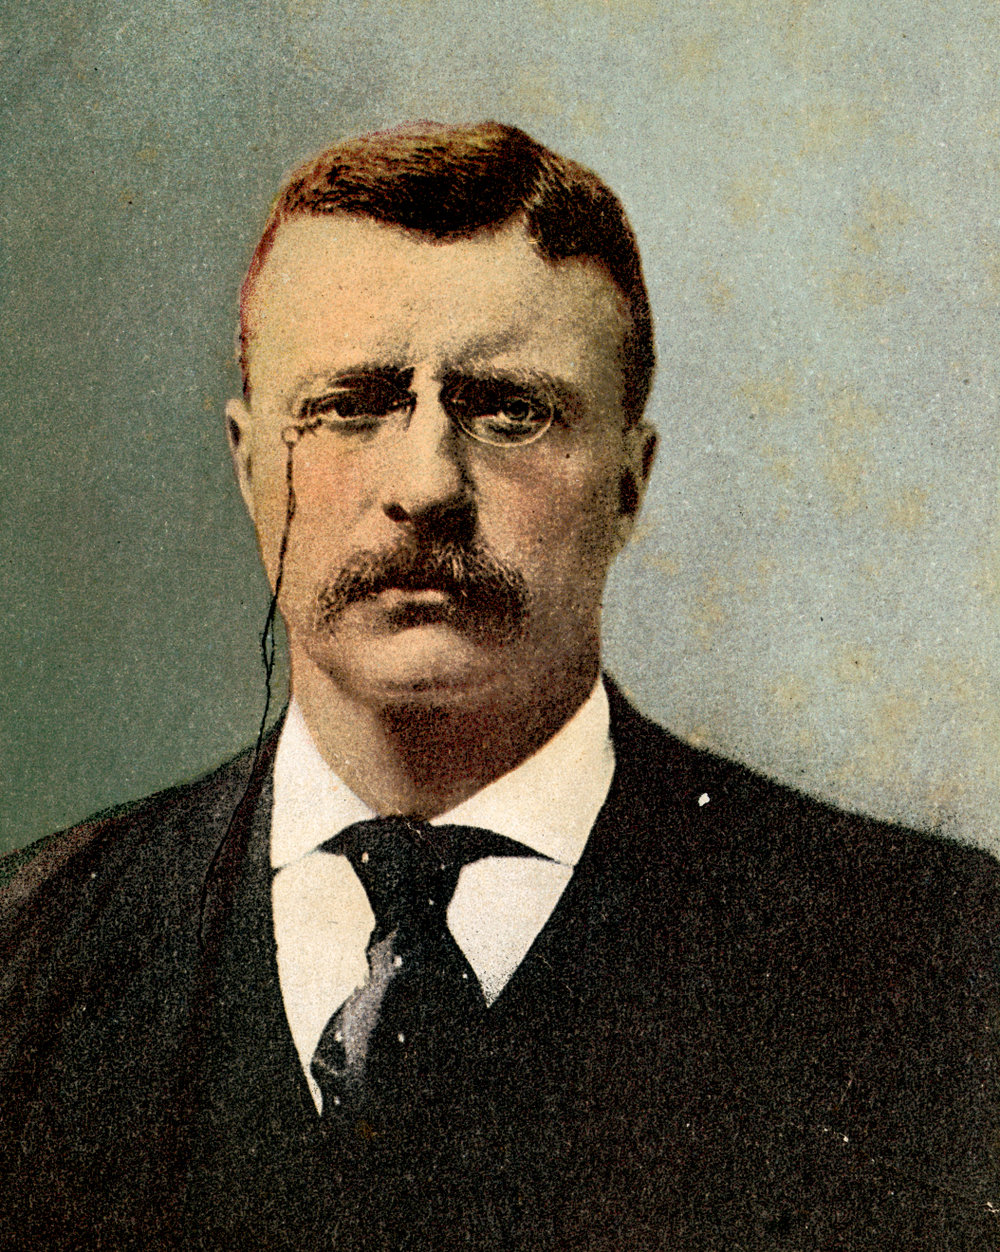 Theodore Roosevelt, by Detroit Photographic Co., 1902. Public domain from the New York Public Library Digital Collections.